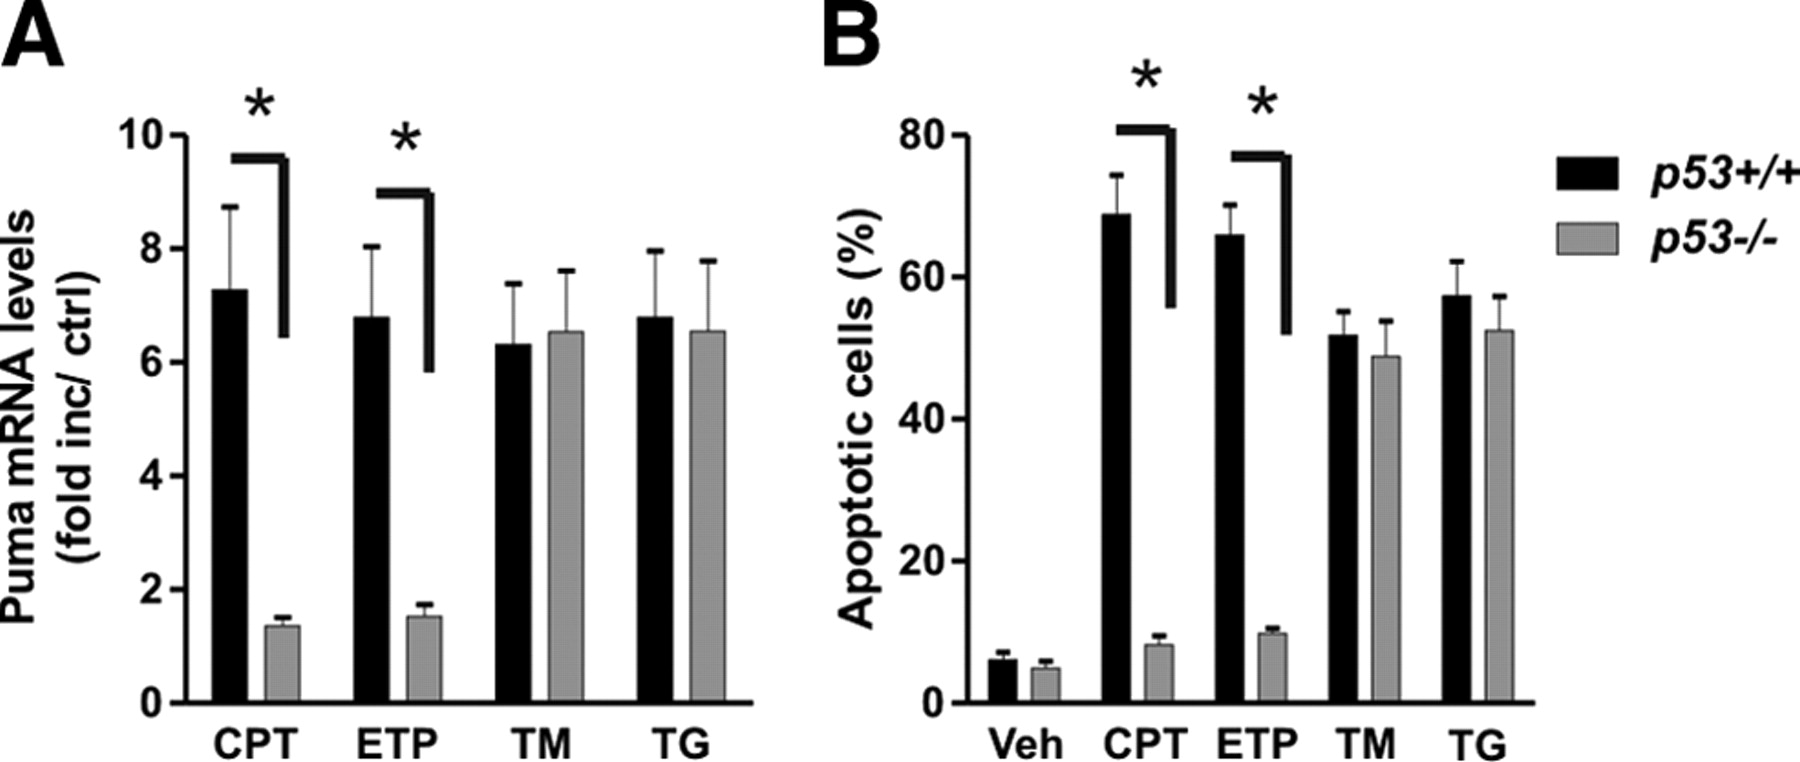 neuronal apoptosis induced by endoplasmic reticulum stress is regulated by atf4 u2013chop